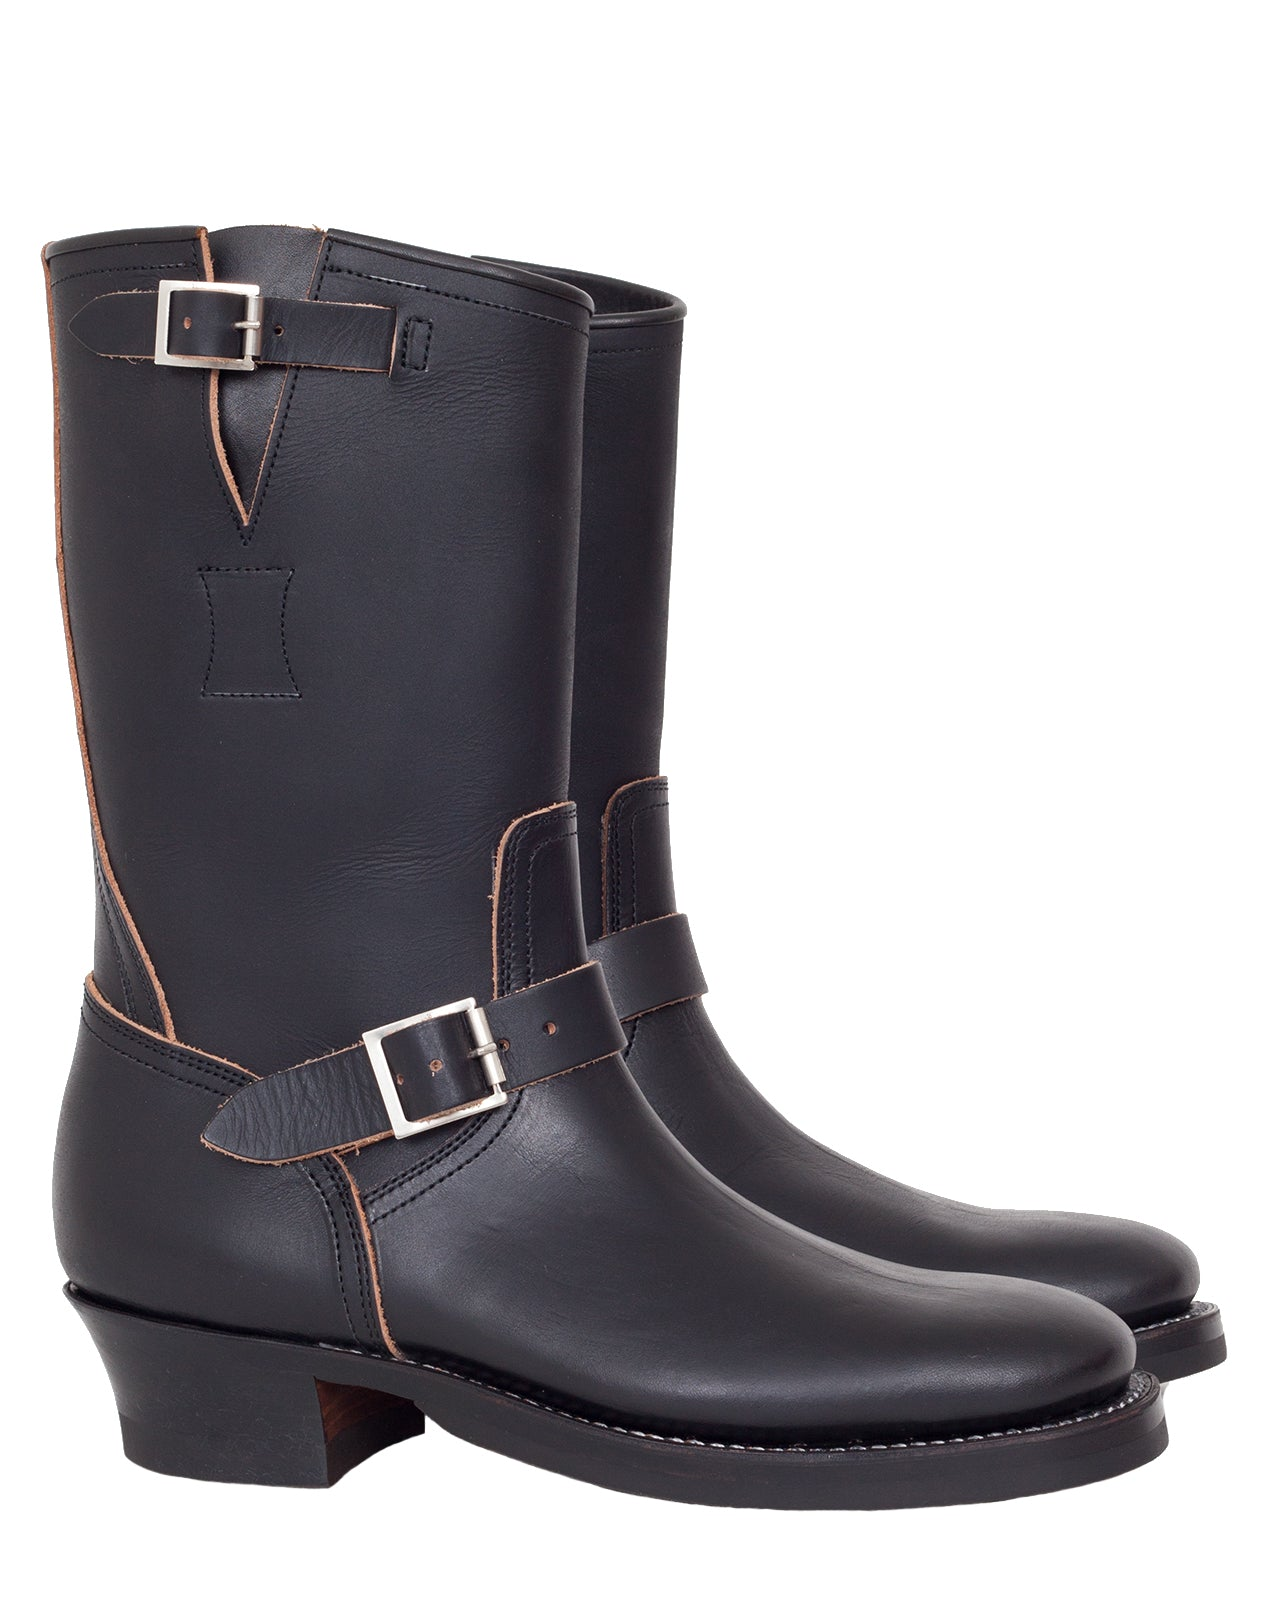 Clinch Engineer Boots, CN Soft Toe, Latigo, Overdye Black